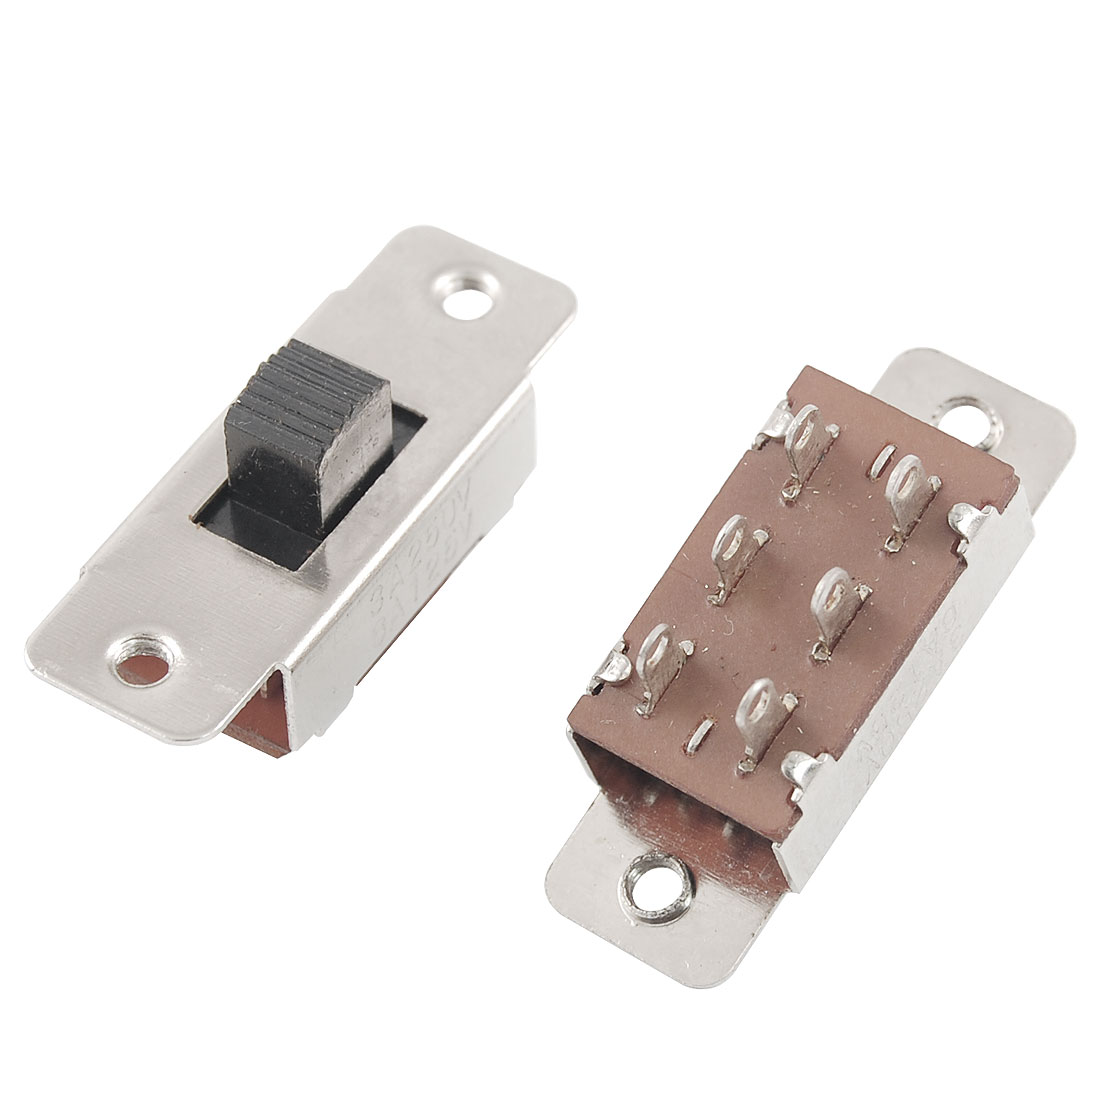 UXCELL 5 Pcs On/Off/On 3 Position Dpdt 2P2t Pcb Panel Slide Switch 6A/125V 3A/250V Ac(China (Mainland))